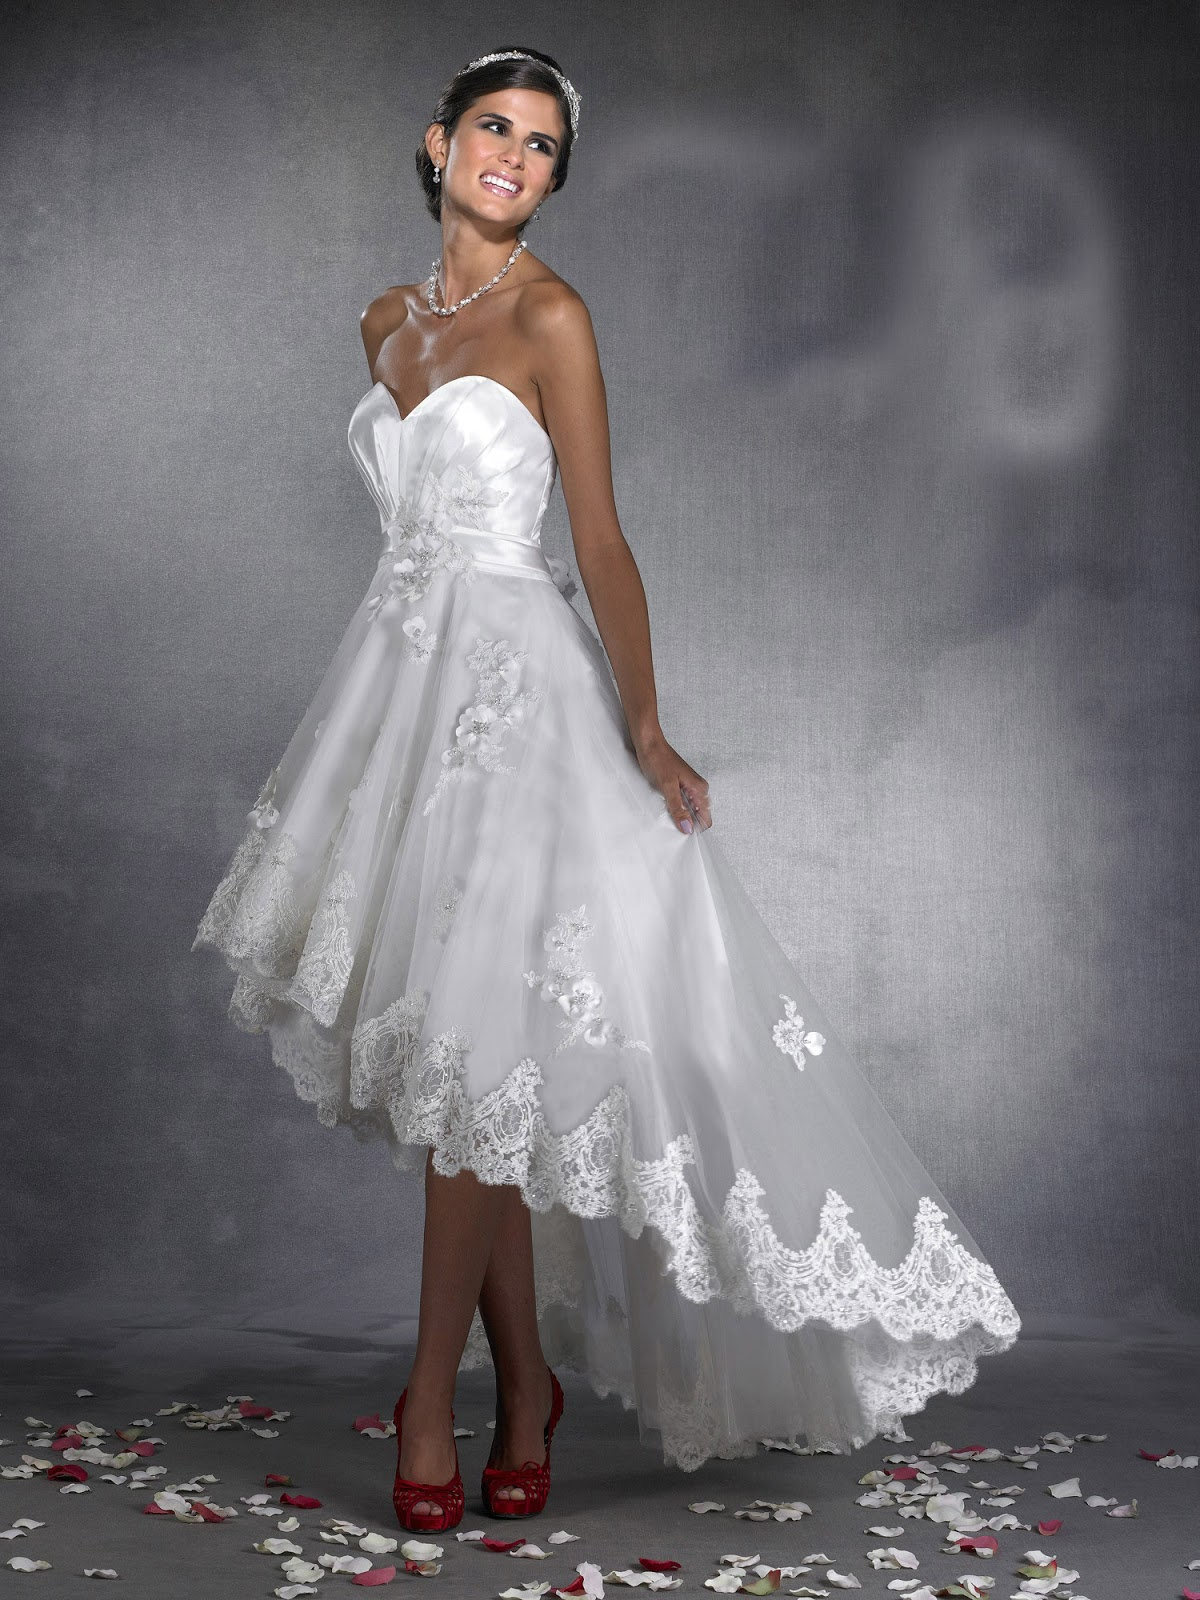 High low wedding dresses dressed up girl for Dress up wedding dresses